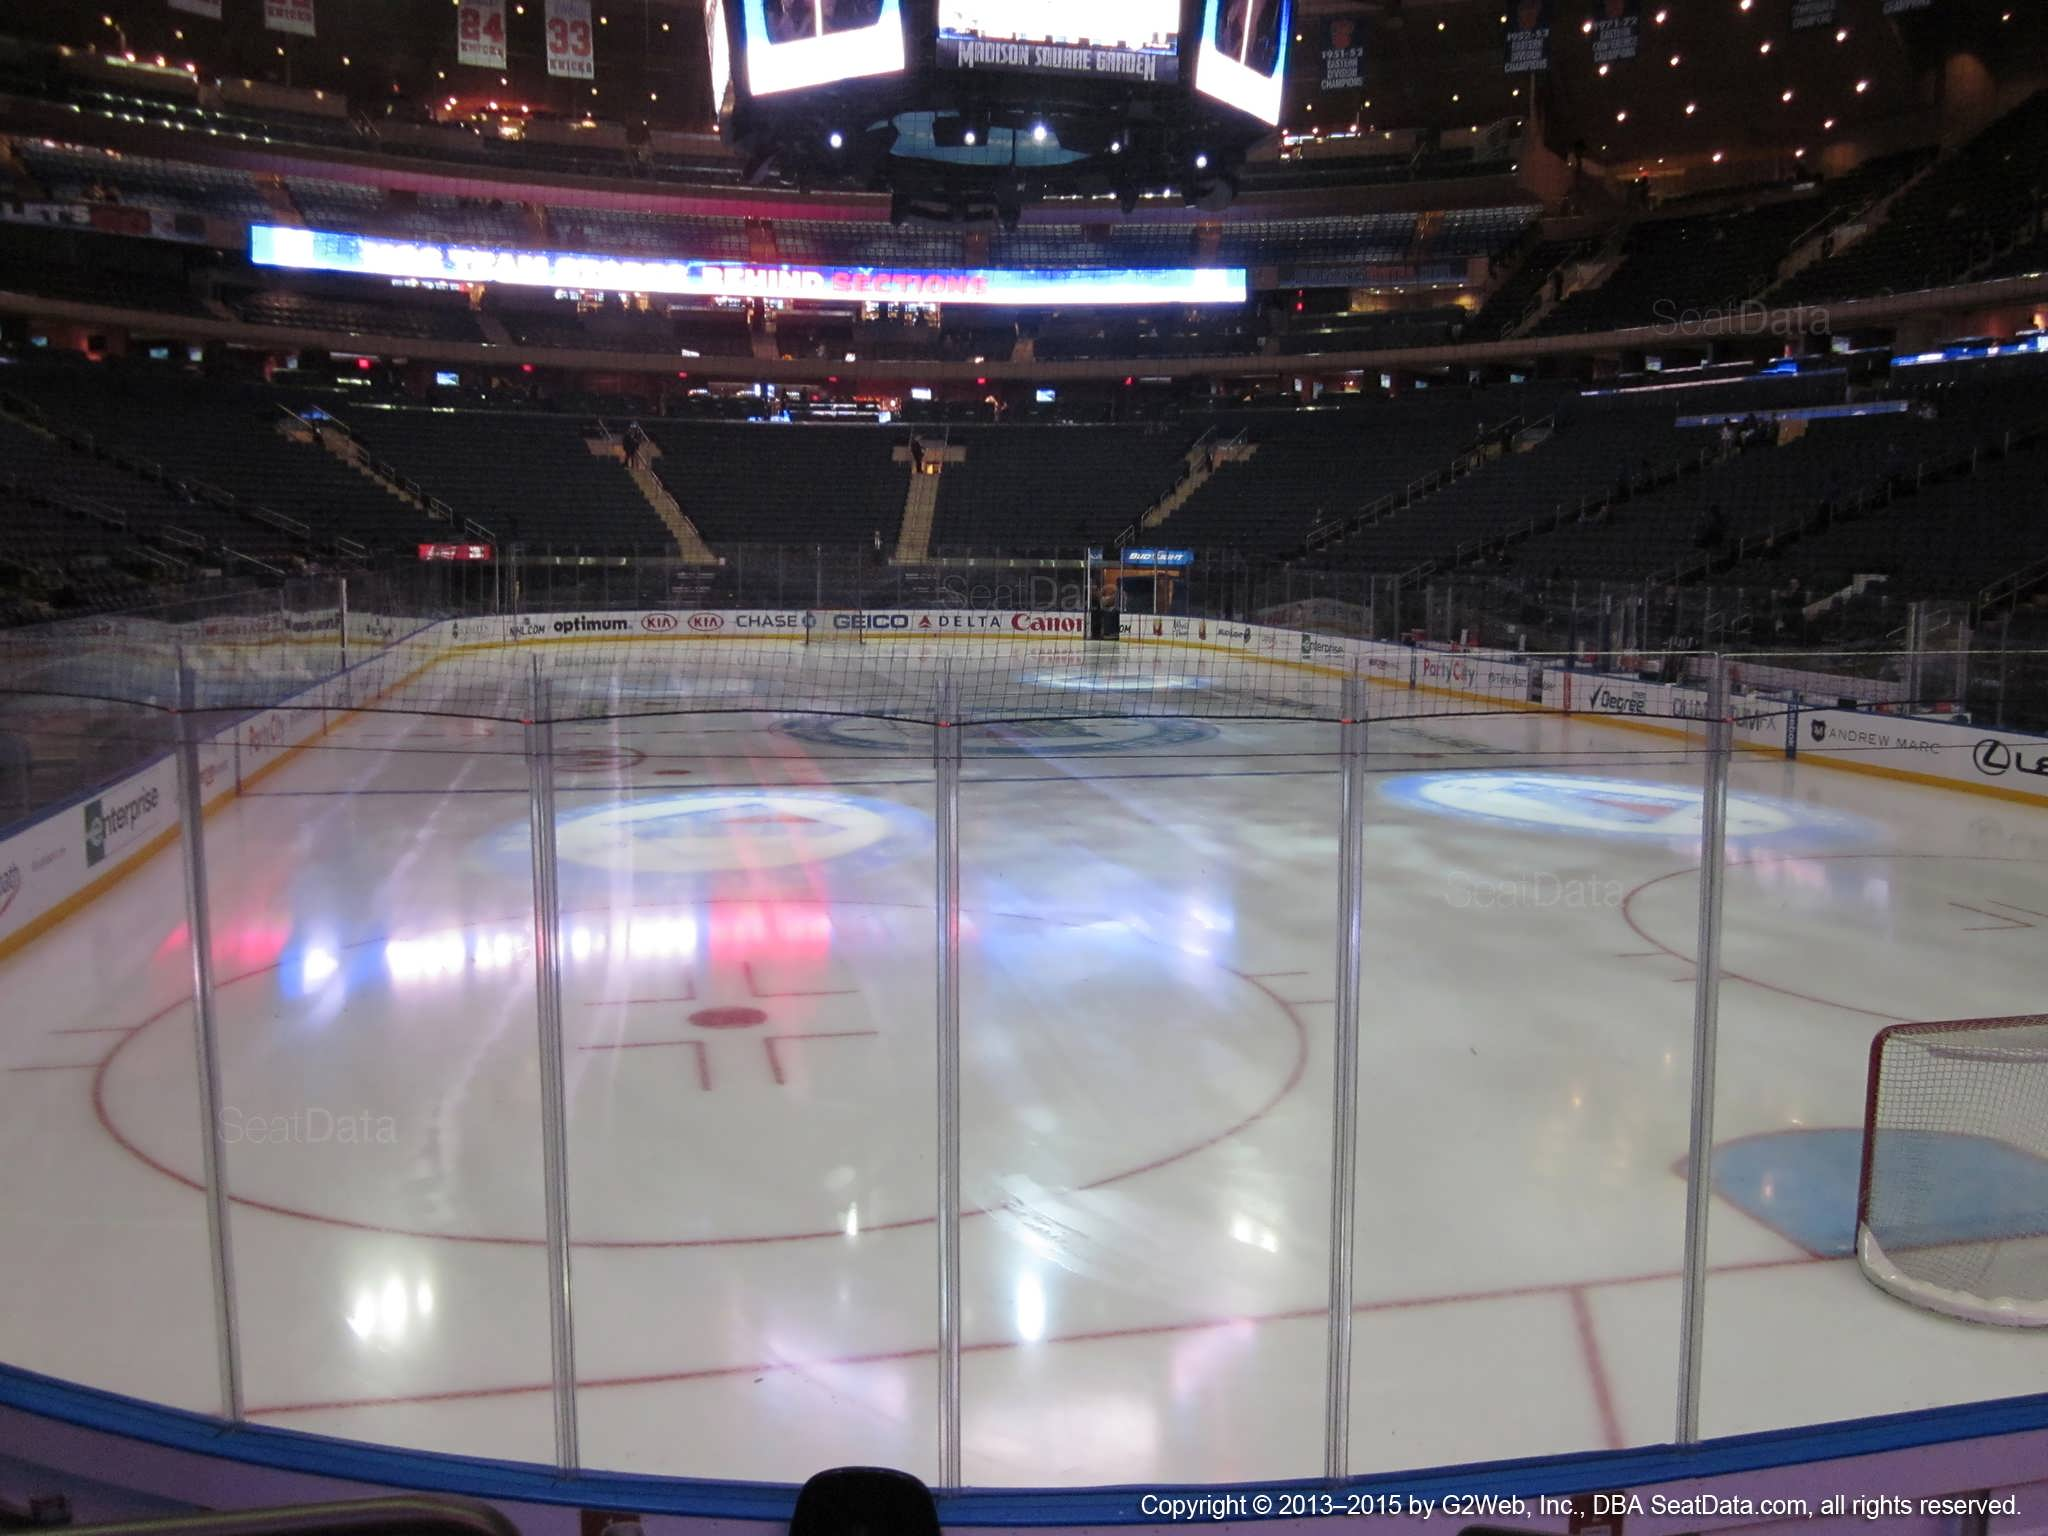 Seat view from section 3 at Madison Square Garden, home of the New York Rangers